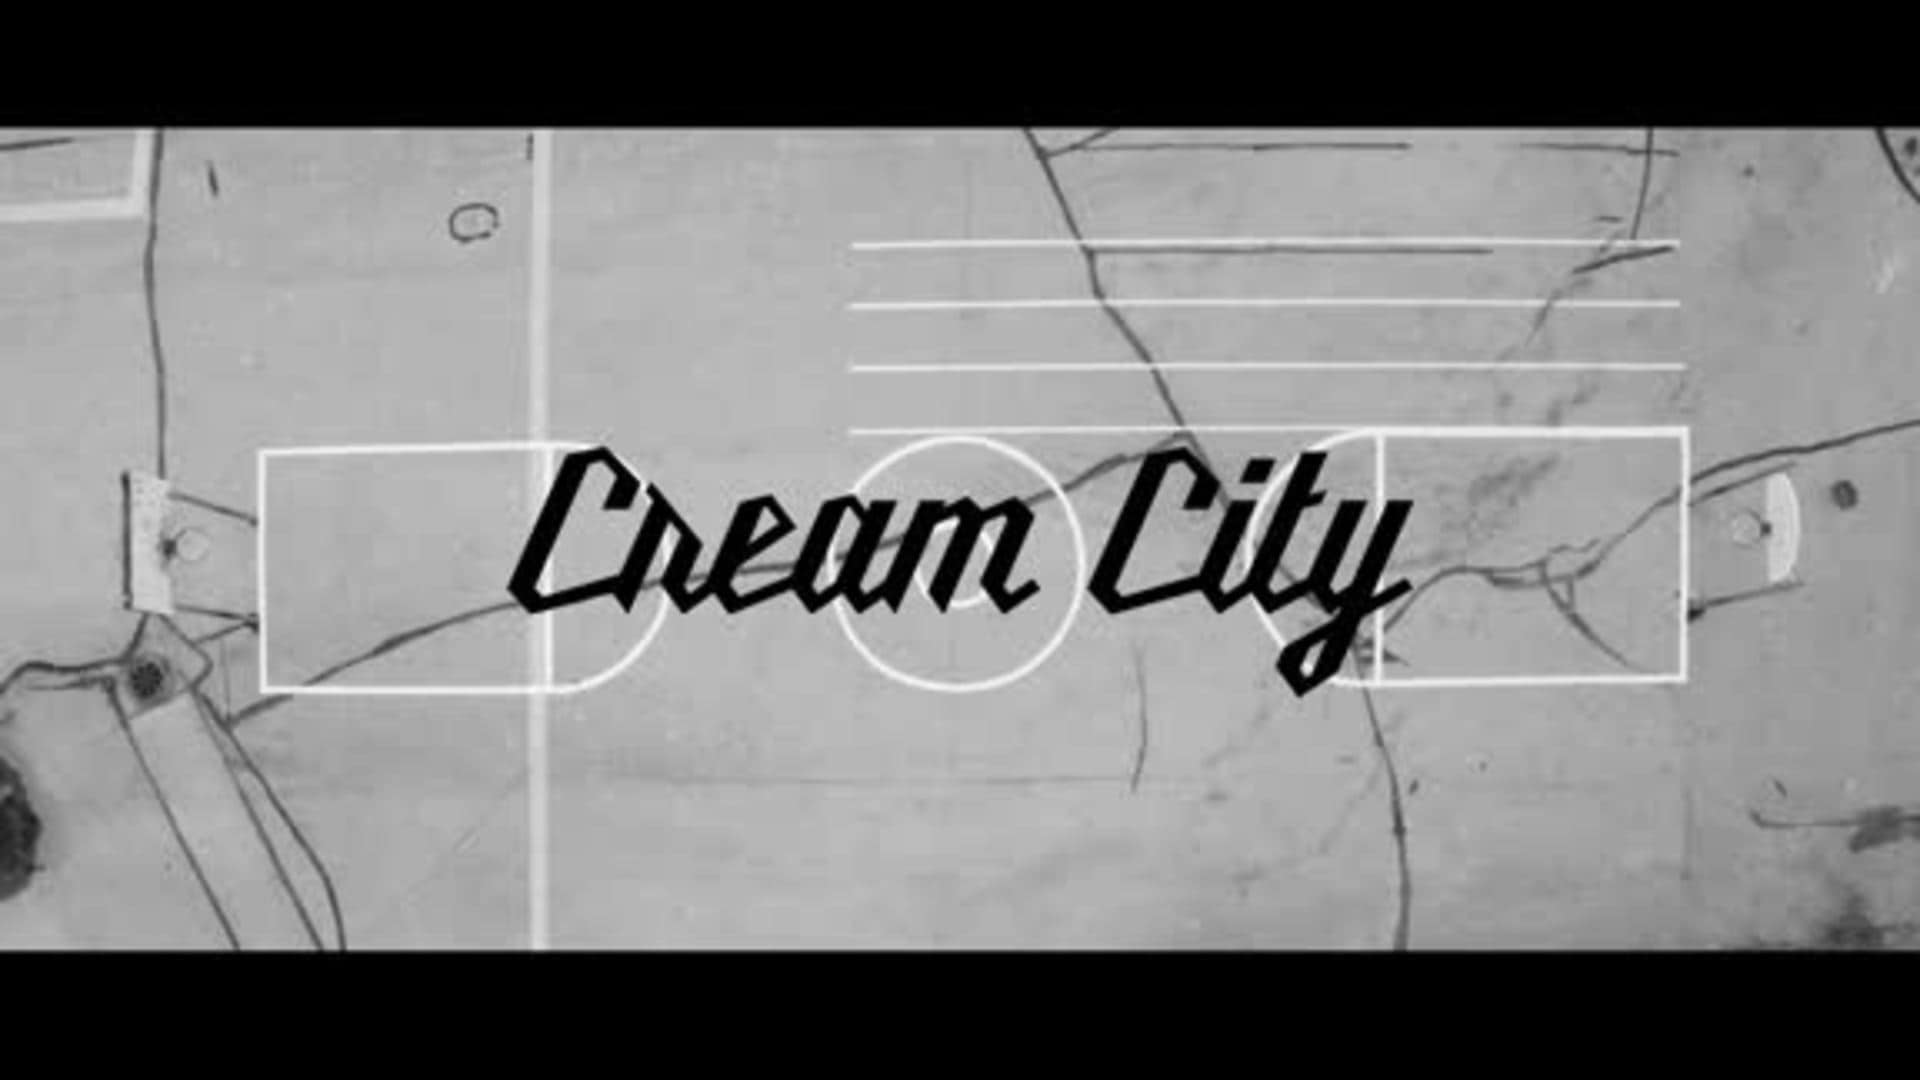 Introducing The Cream City Collection